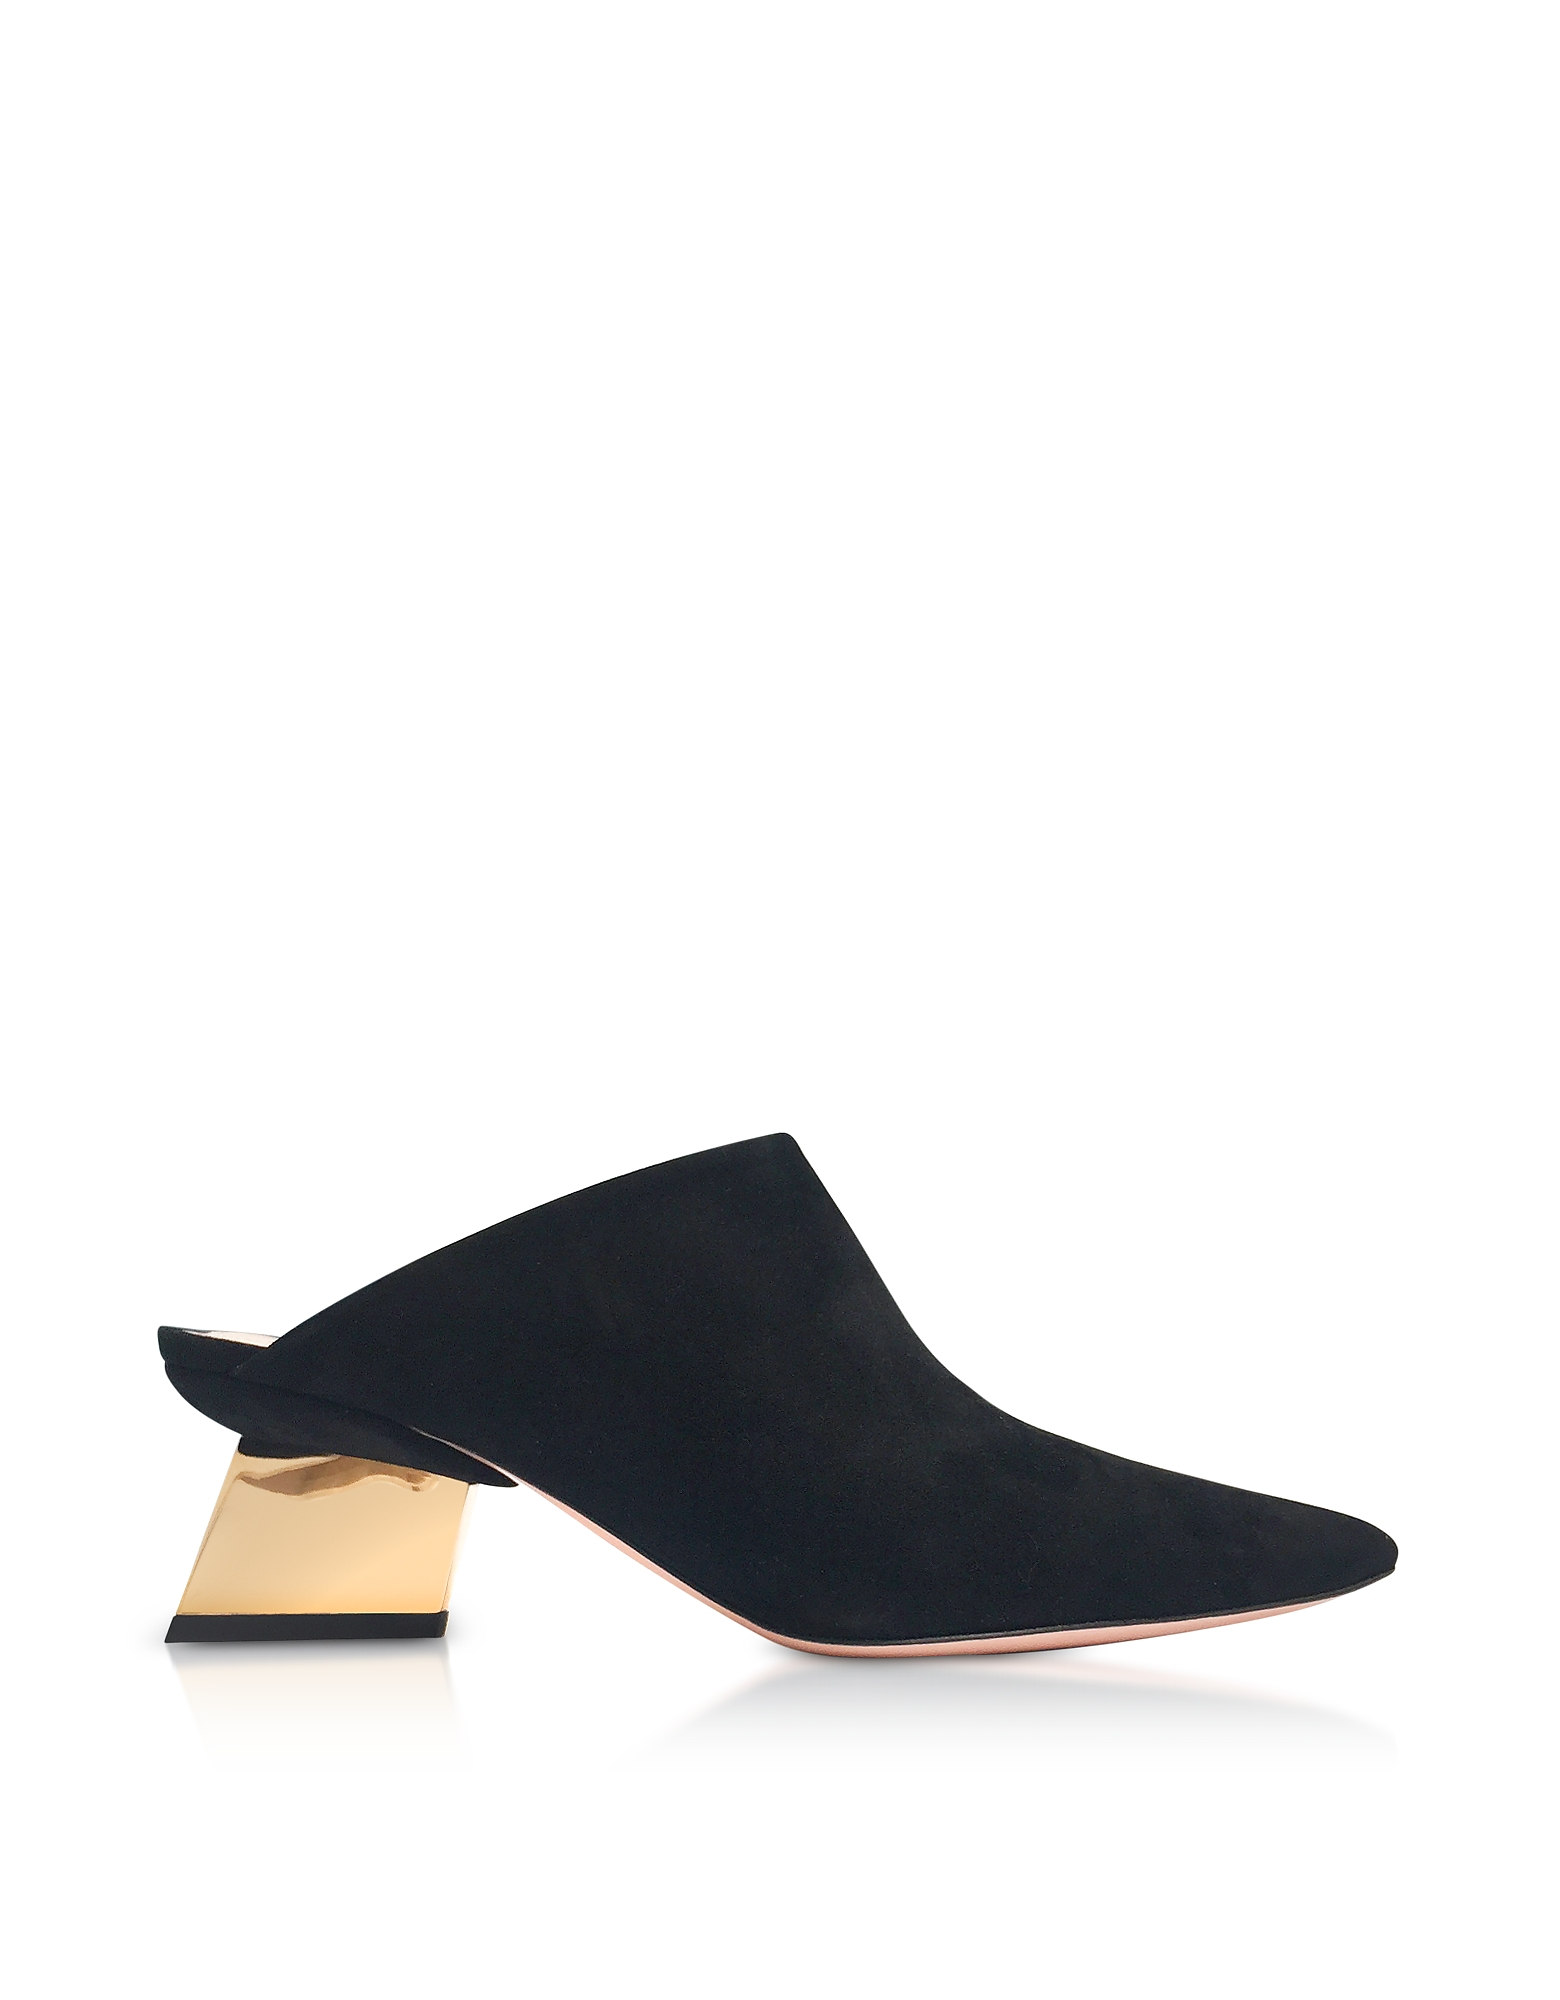 Nicholas Kirkwood Shoes, Black Suede 55mm Veronika Mules